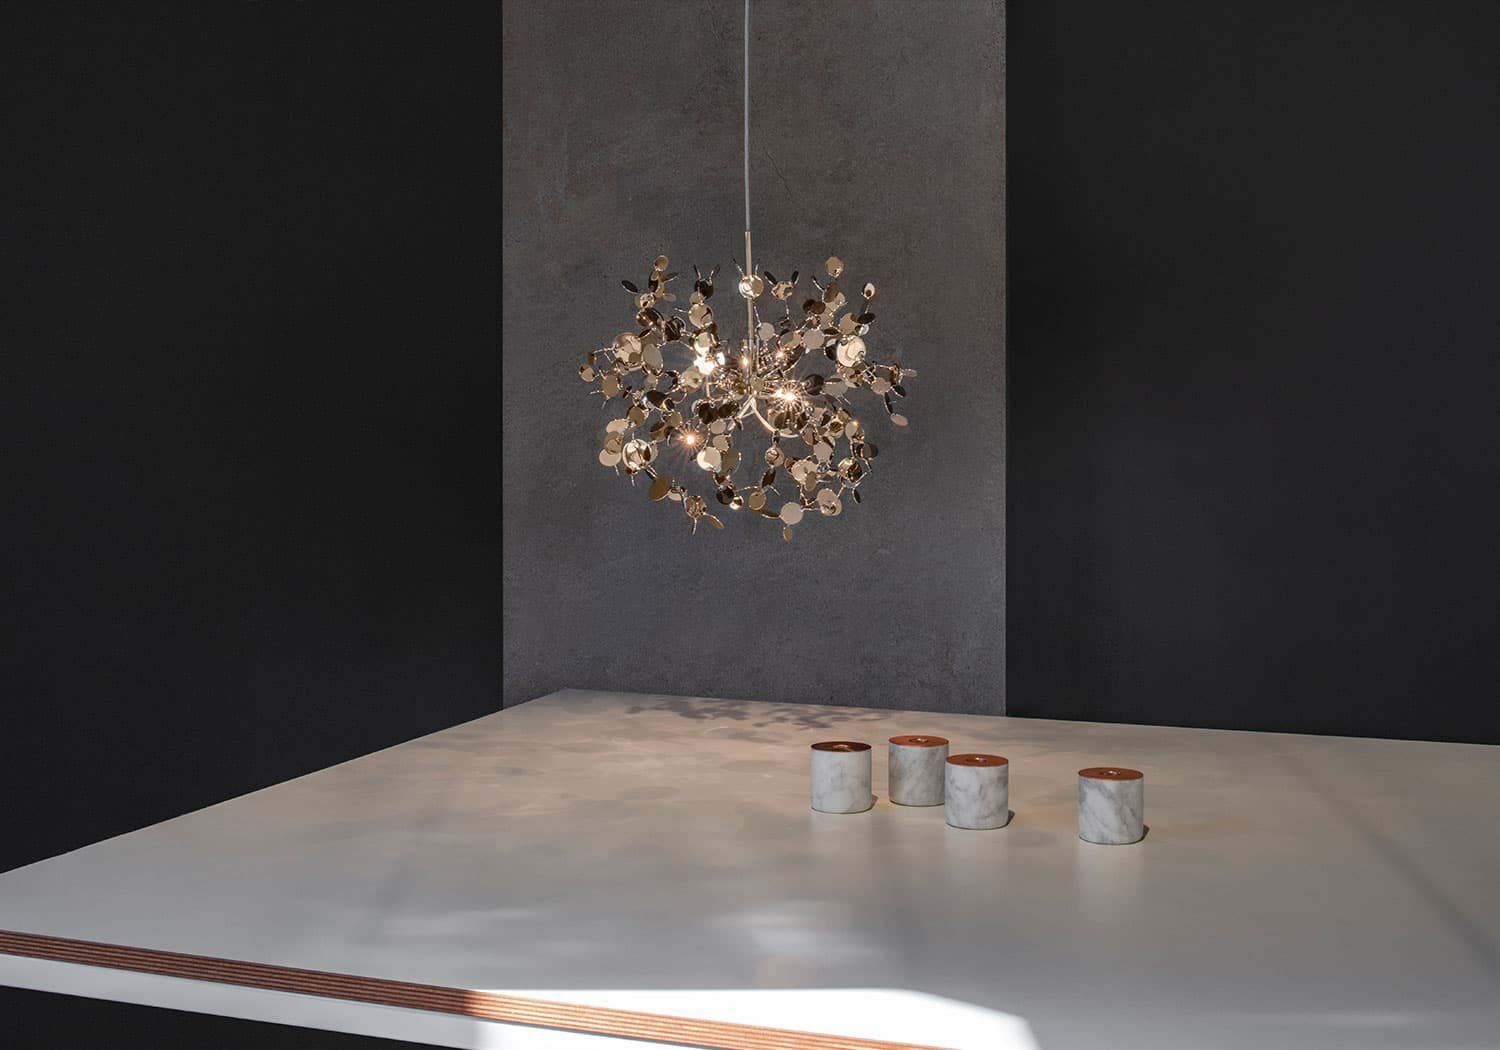 A Precious Cloud Sculpture of Light - Argent Fixtures by Terzani Lighting Italy - Single Element Suspension